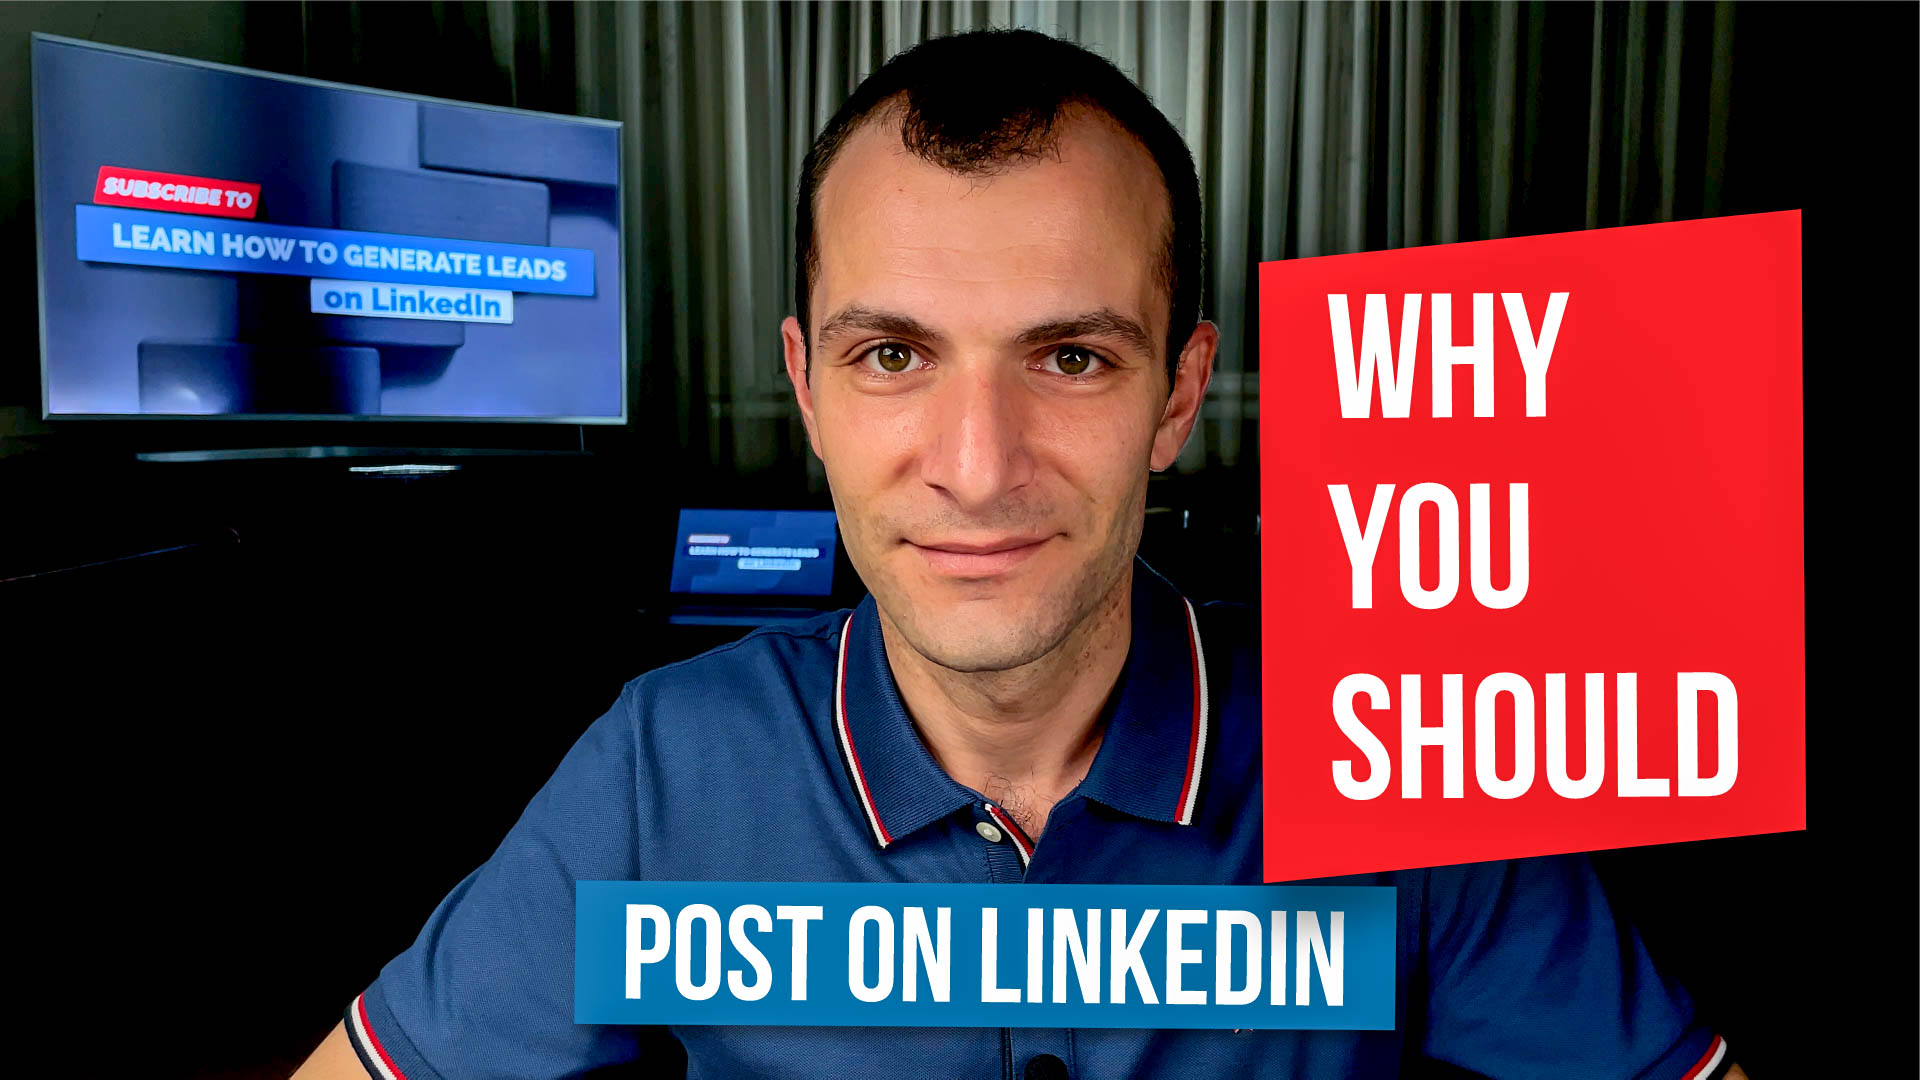 How to Overcome the Fear and Post on LinkedIn